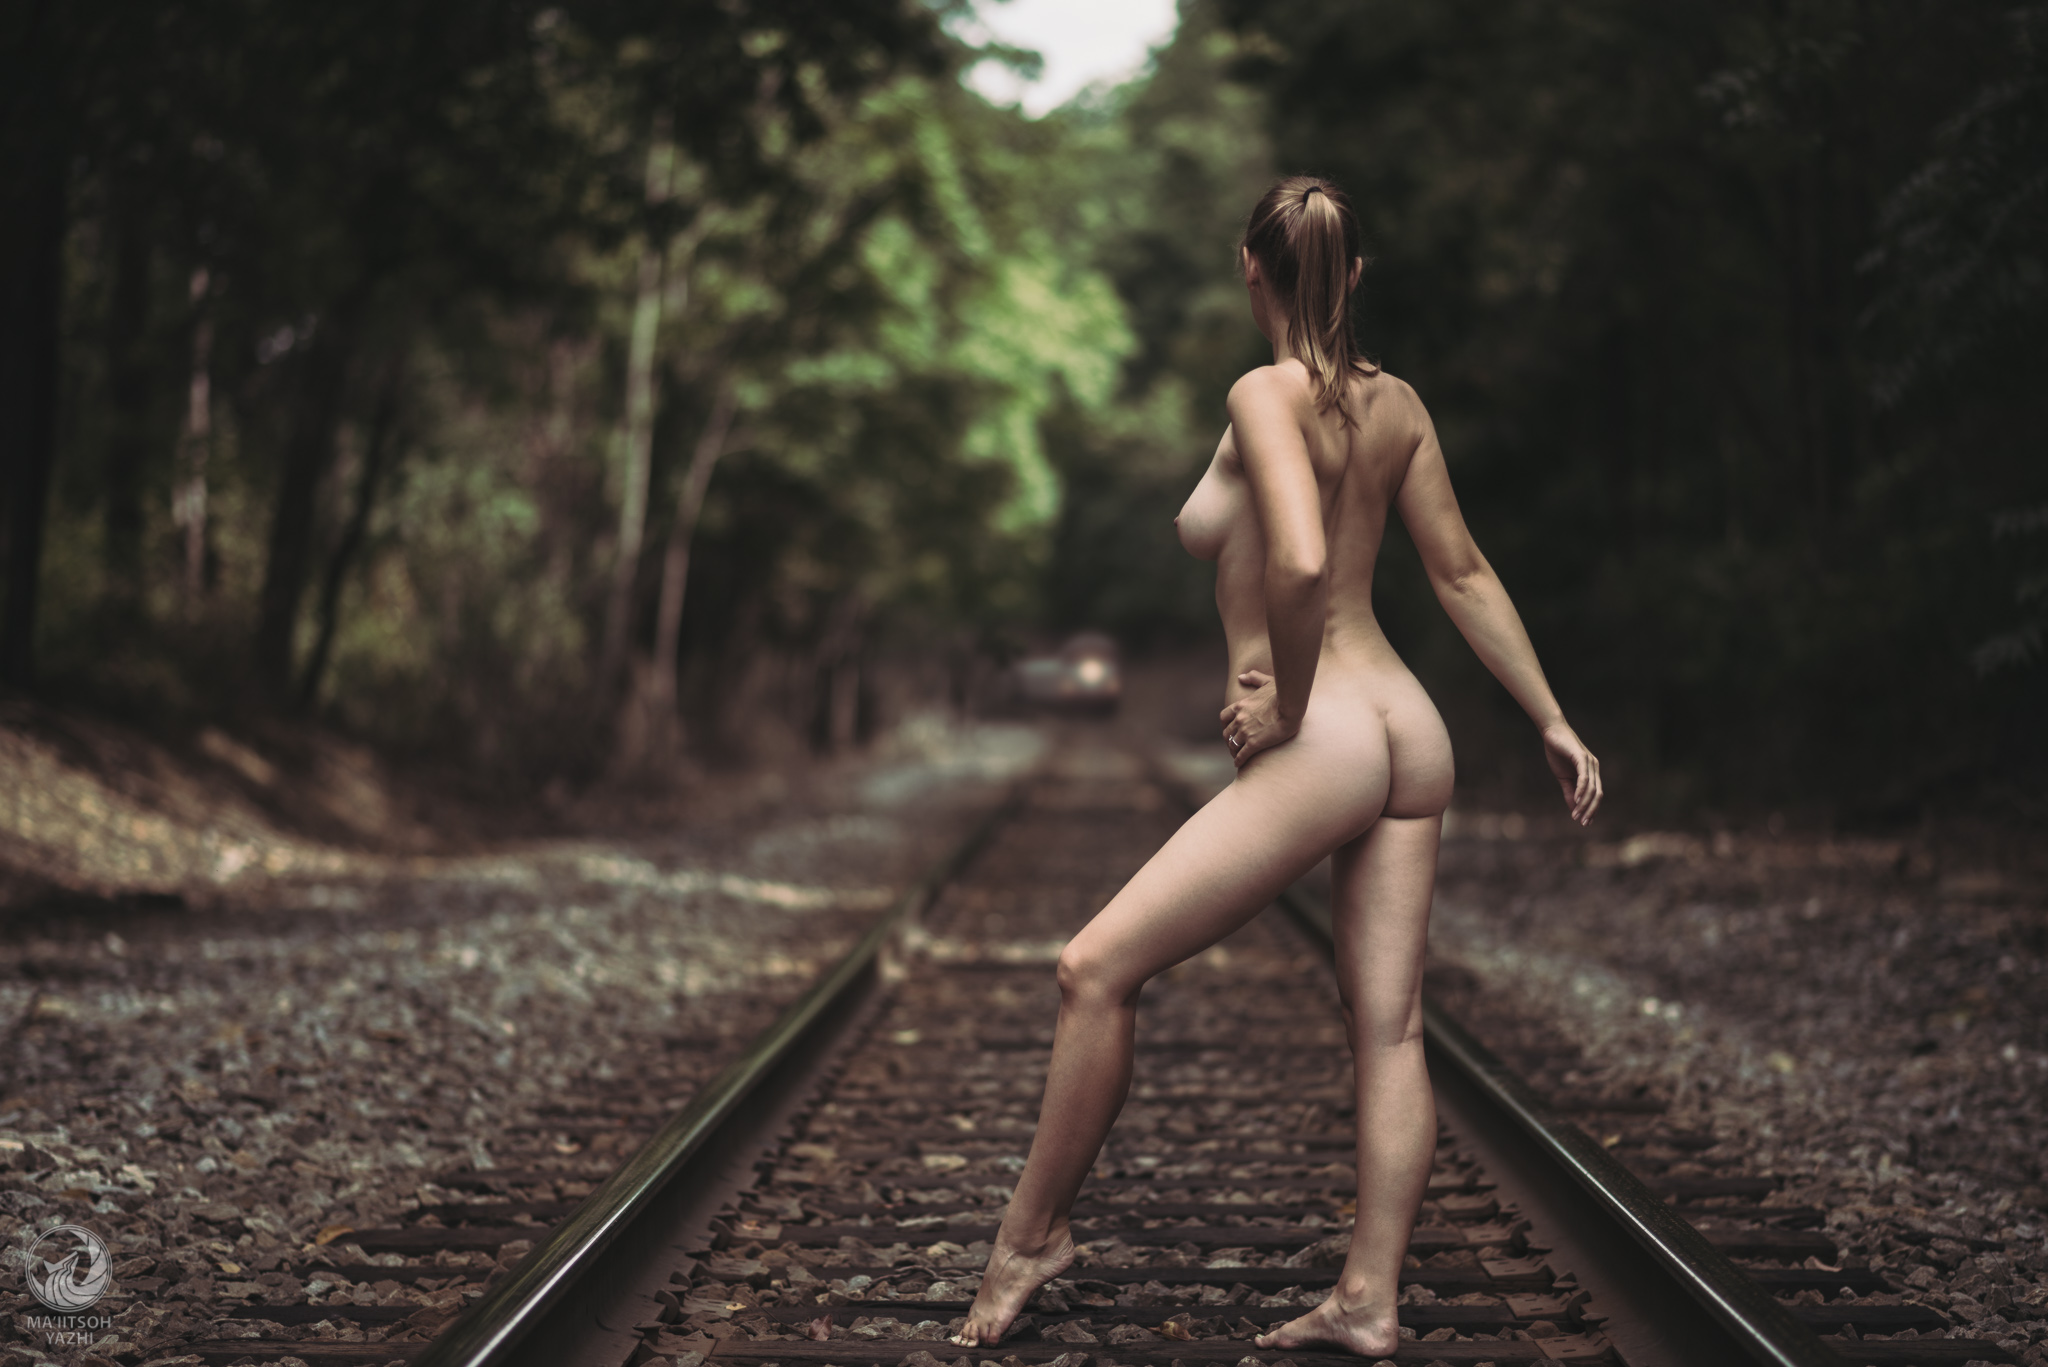 Riding the Rails (Preview)